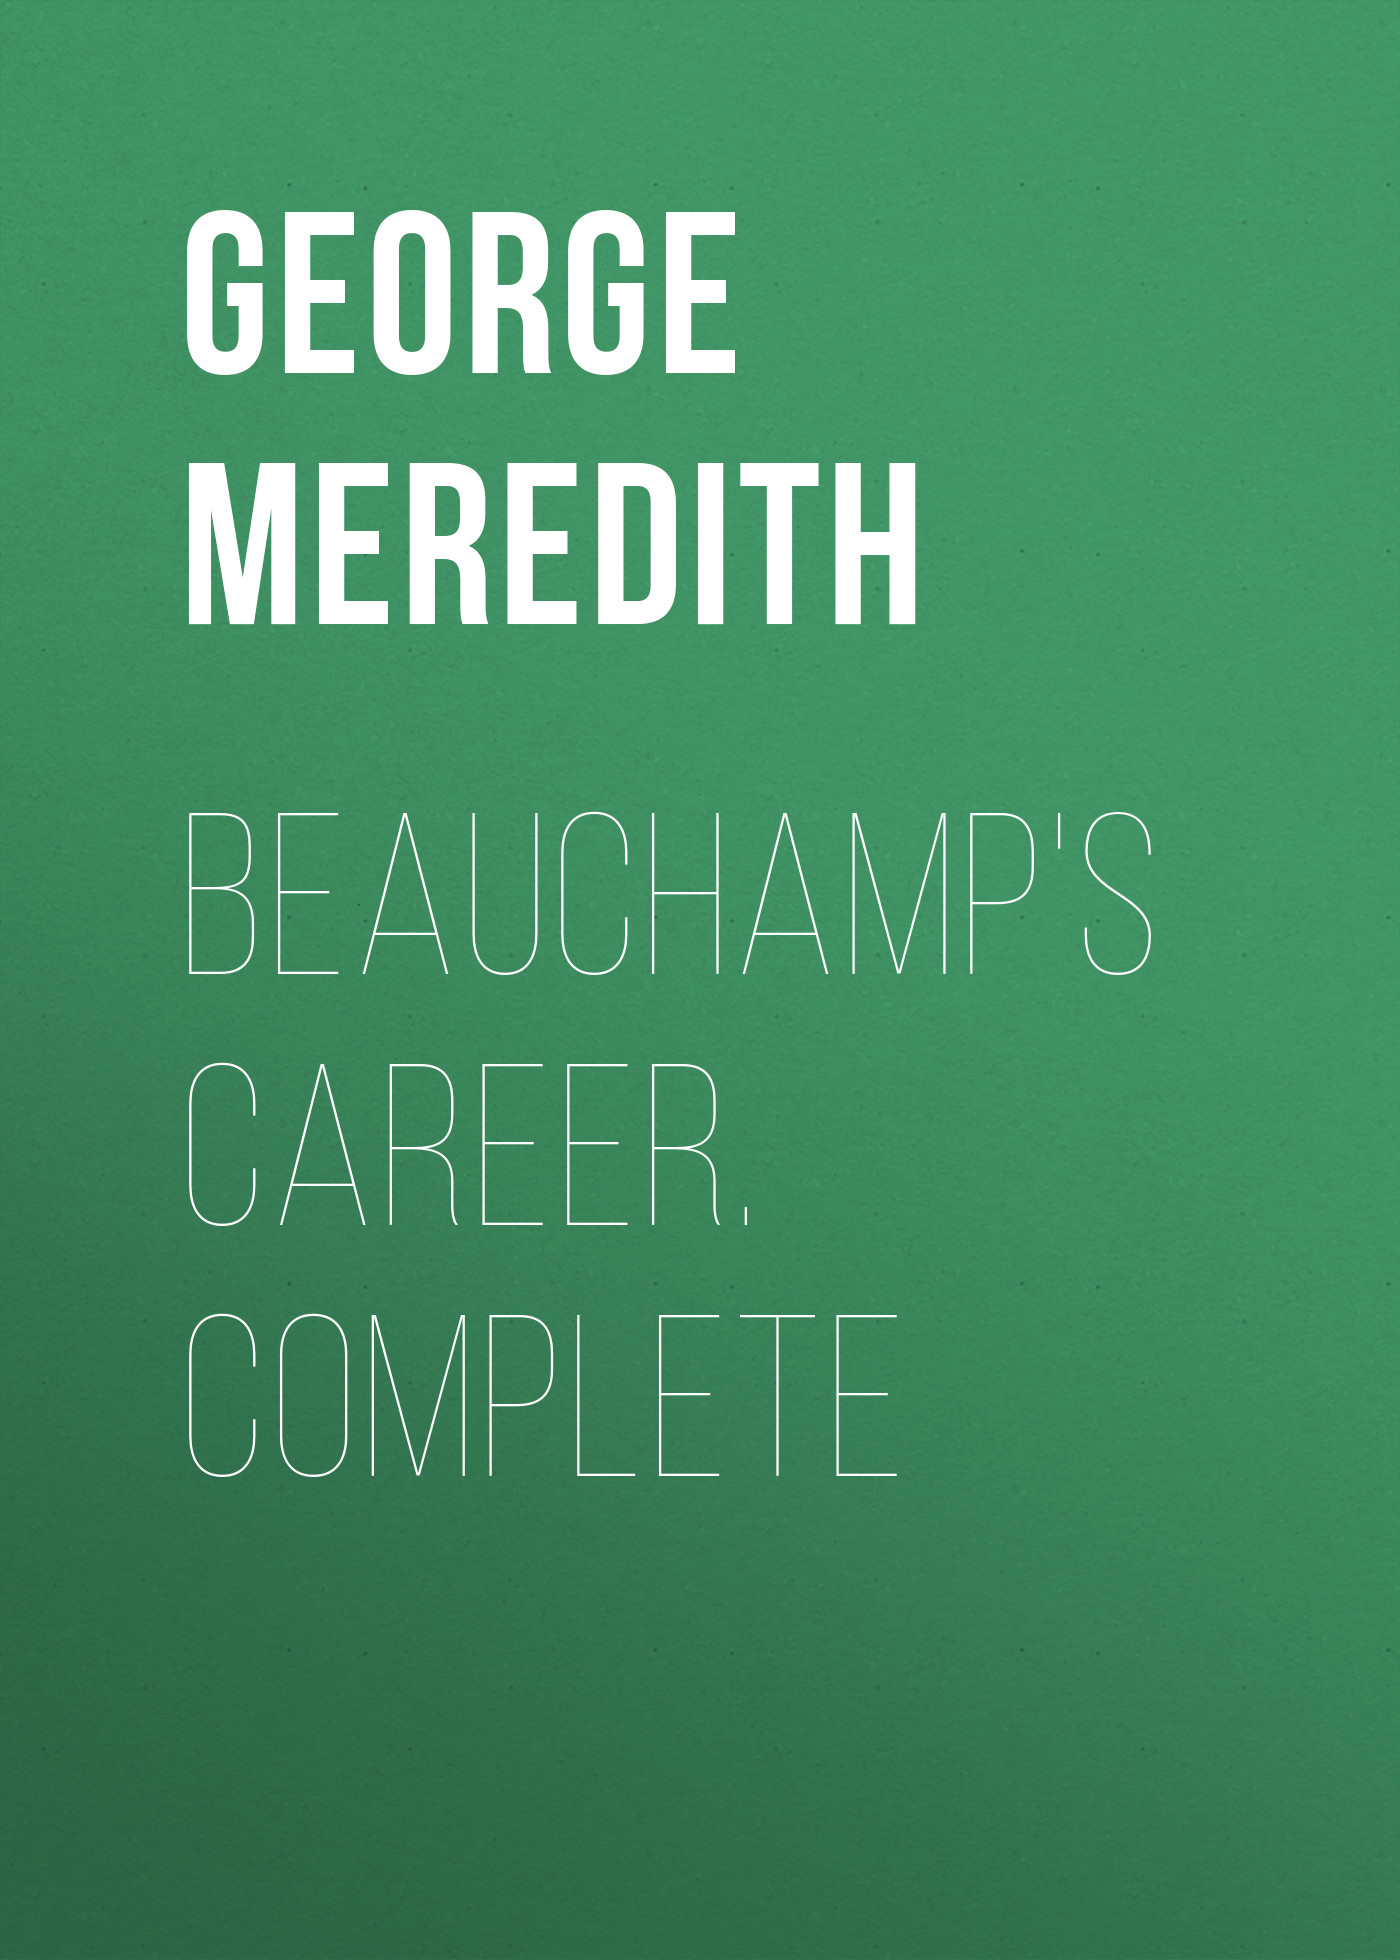 цена George Meredith Beauchamp's Career. Complete в интернет-магазинах